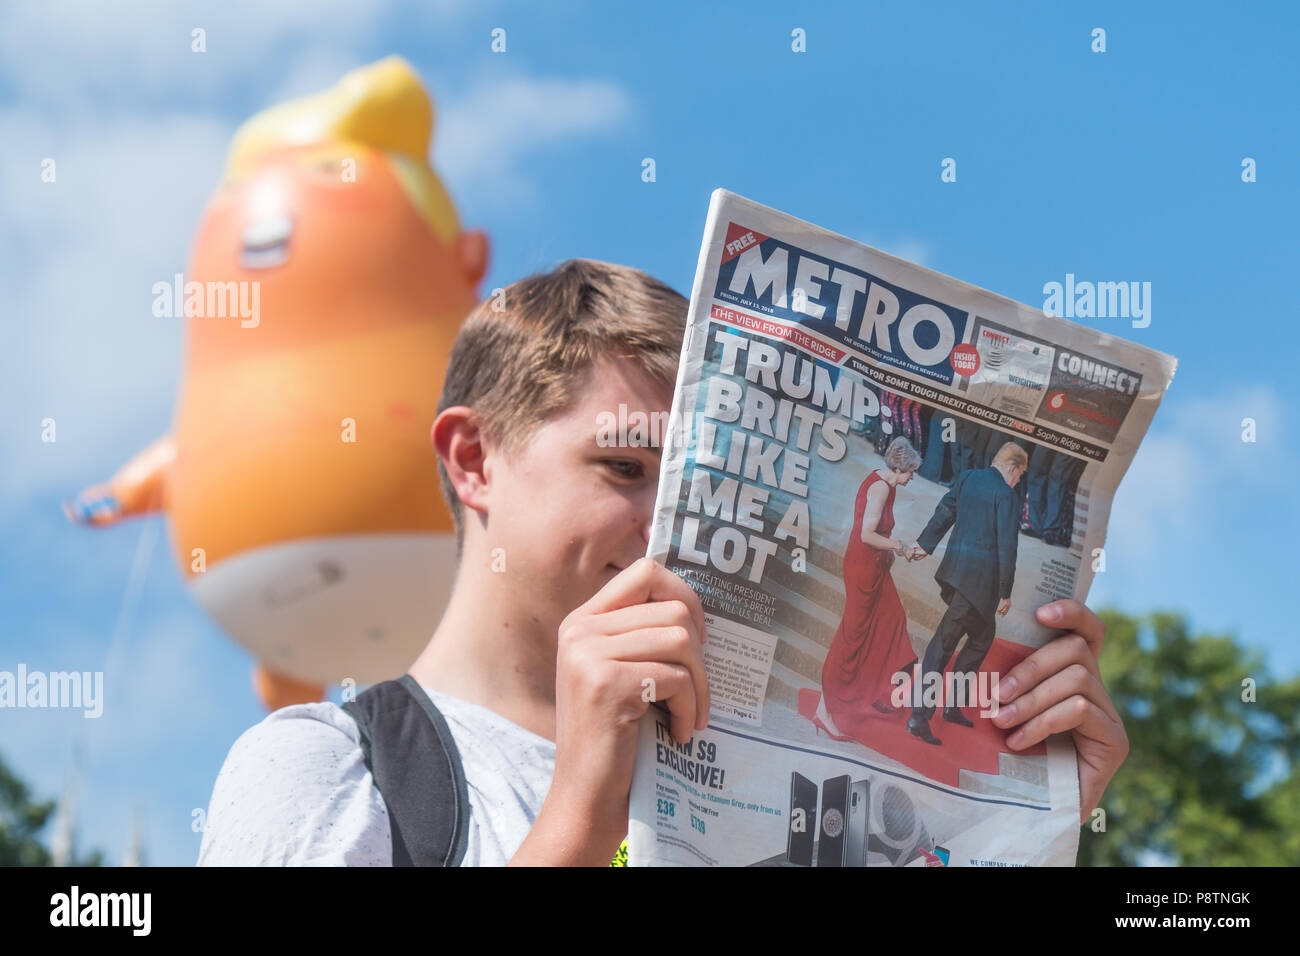 London, UK. 13th July, 2018. Baby Trump blimp floats about Parliament Square Credit: Zefrog/Alamy Live News - Stock Image